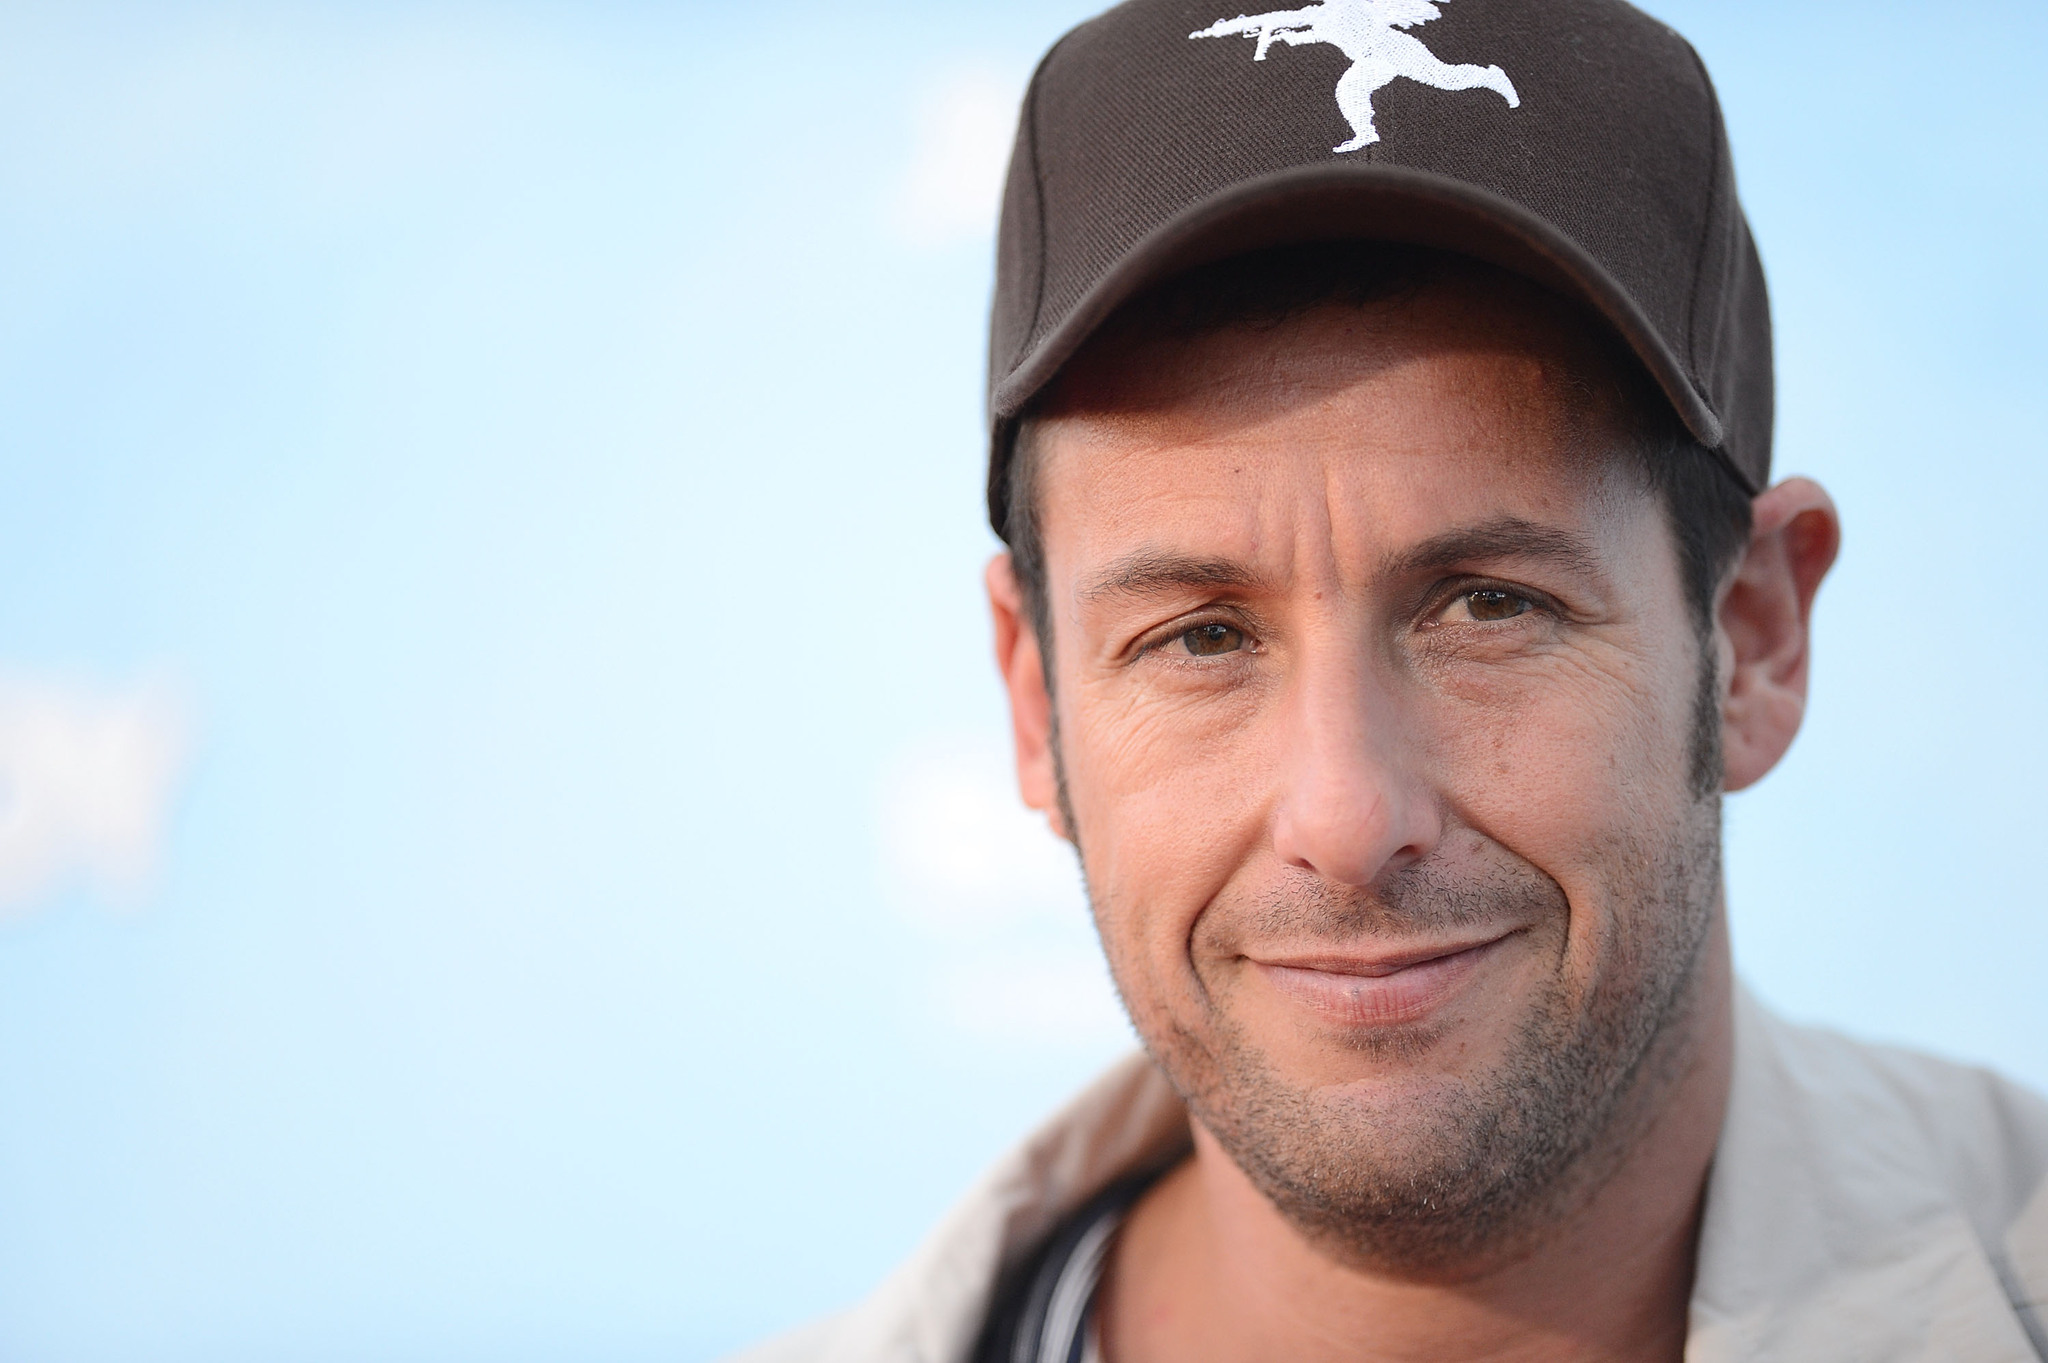 Adam Sandler at an event for That's My Boy (2012)